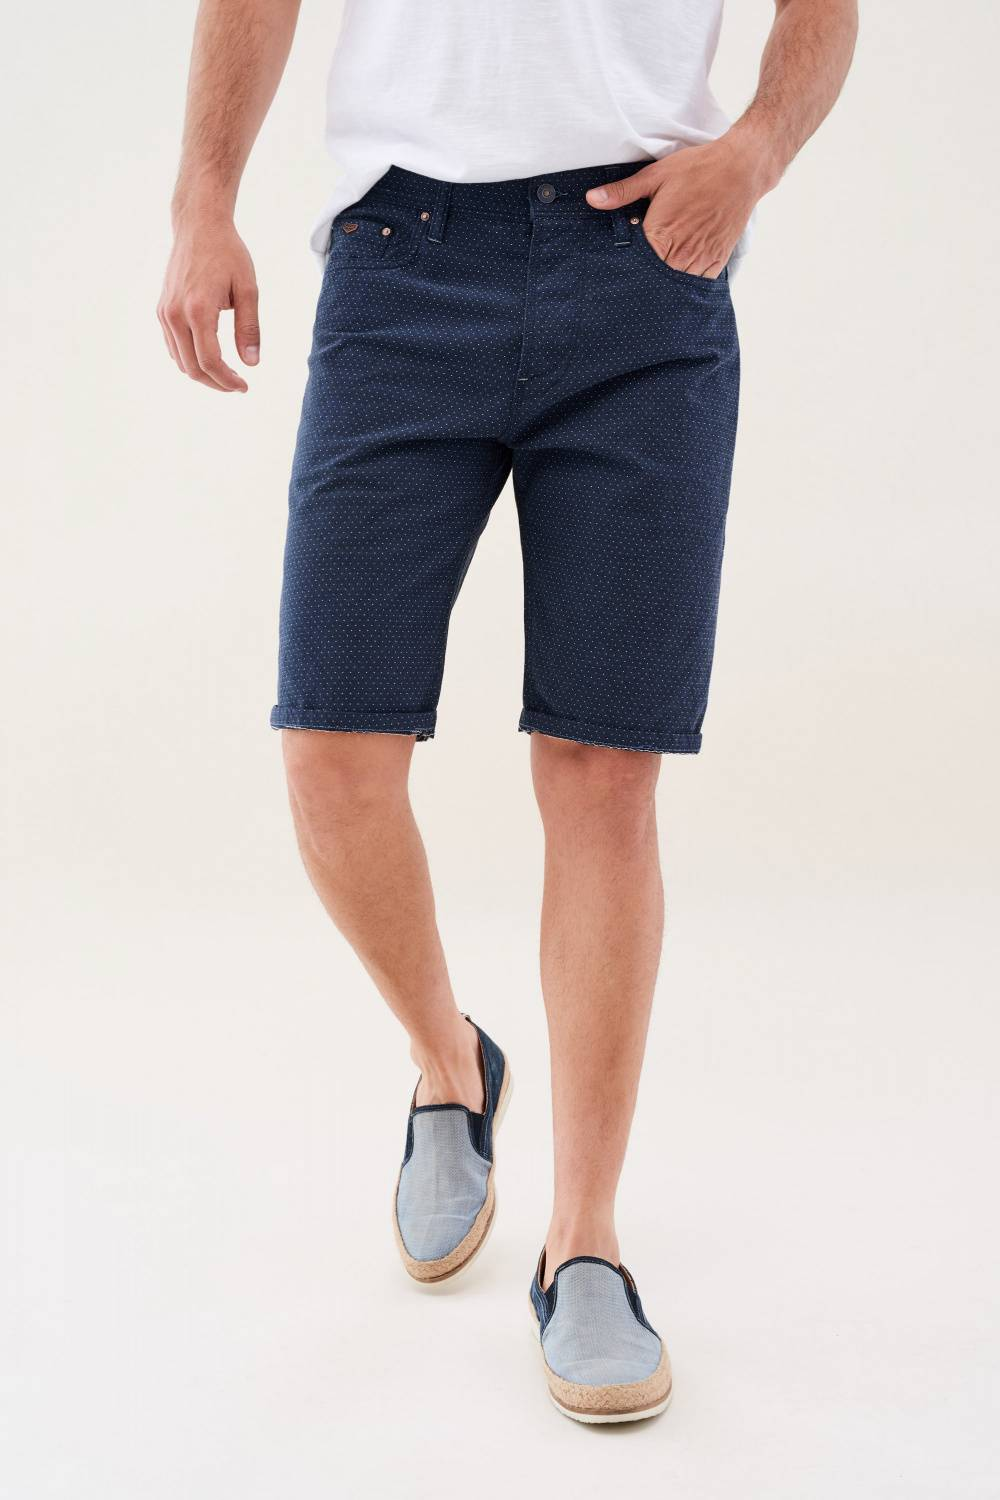 Loose shorts in colour fabric - Salsa